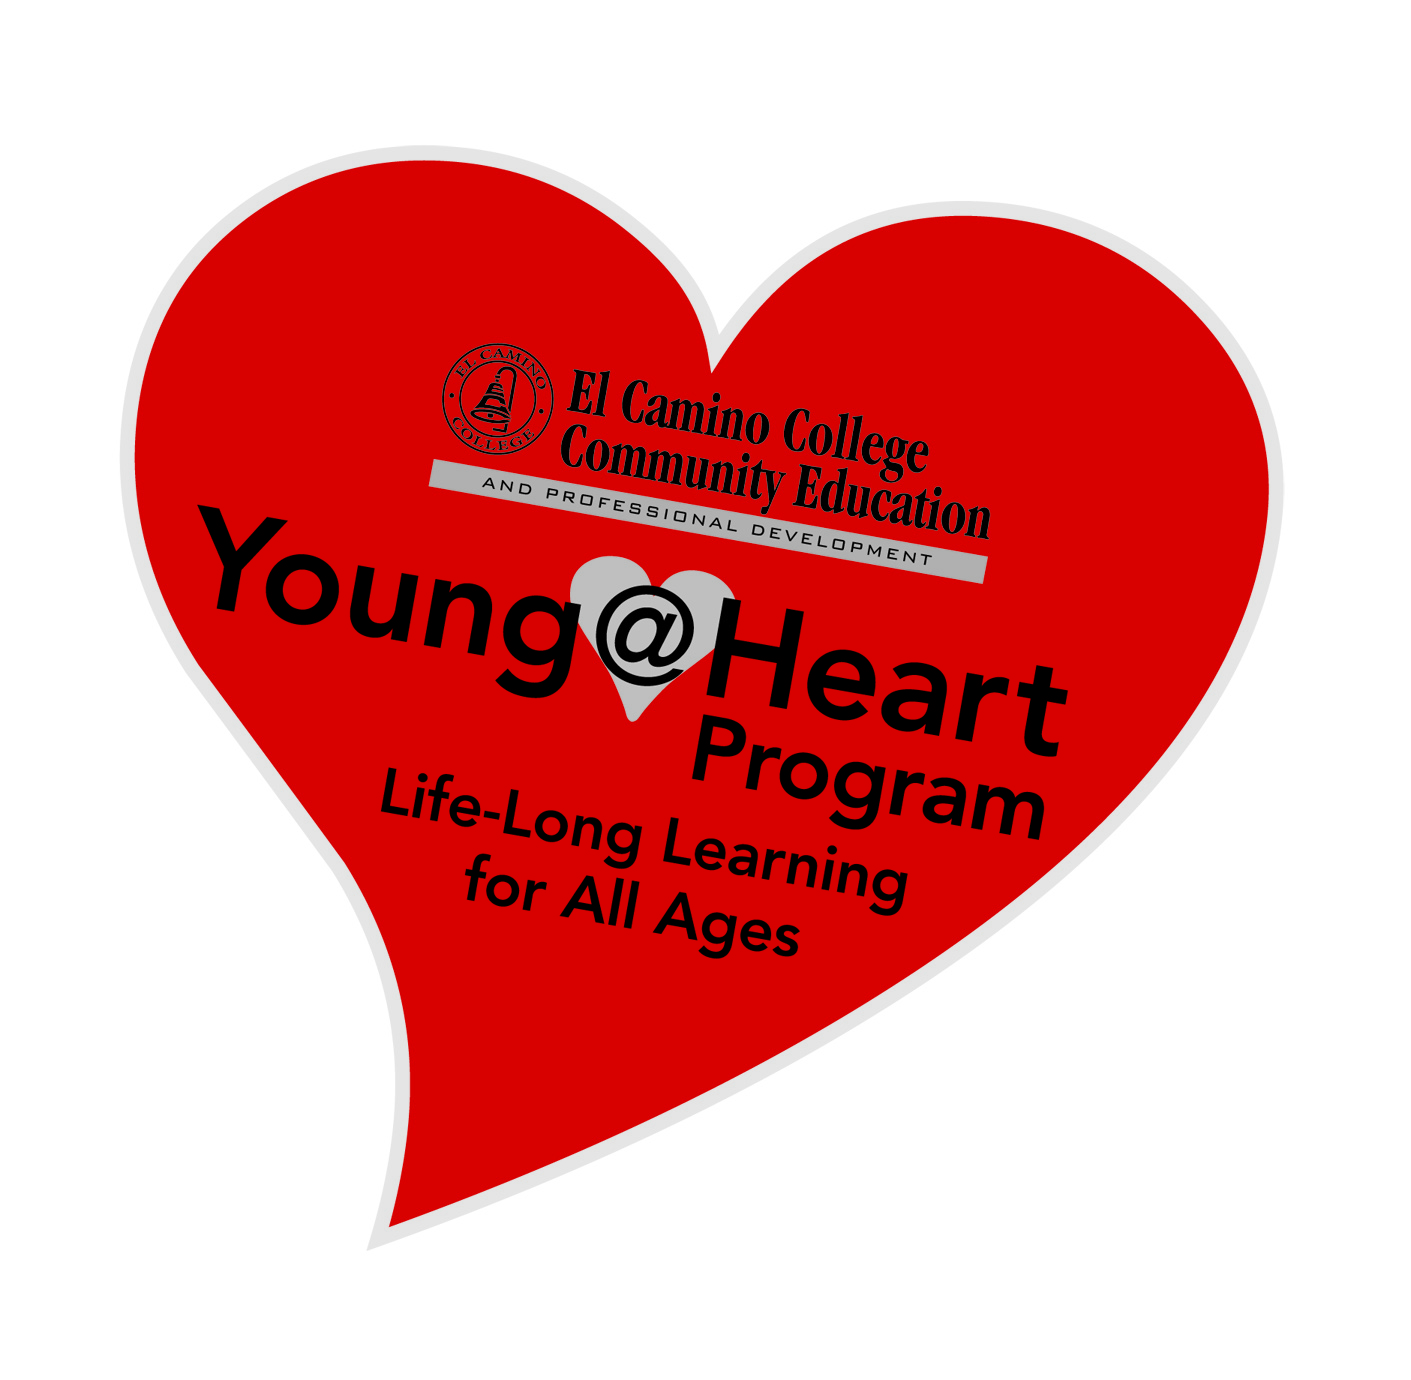 Young @ Heart 50+ - Courses - El Camino College Community Education